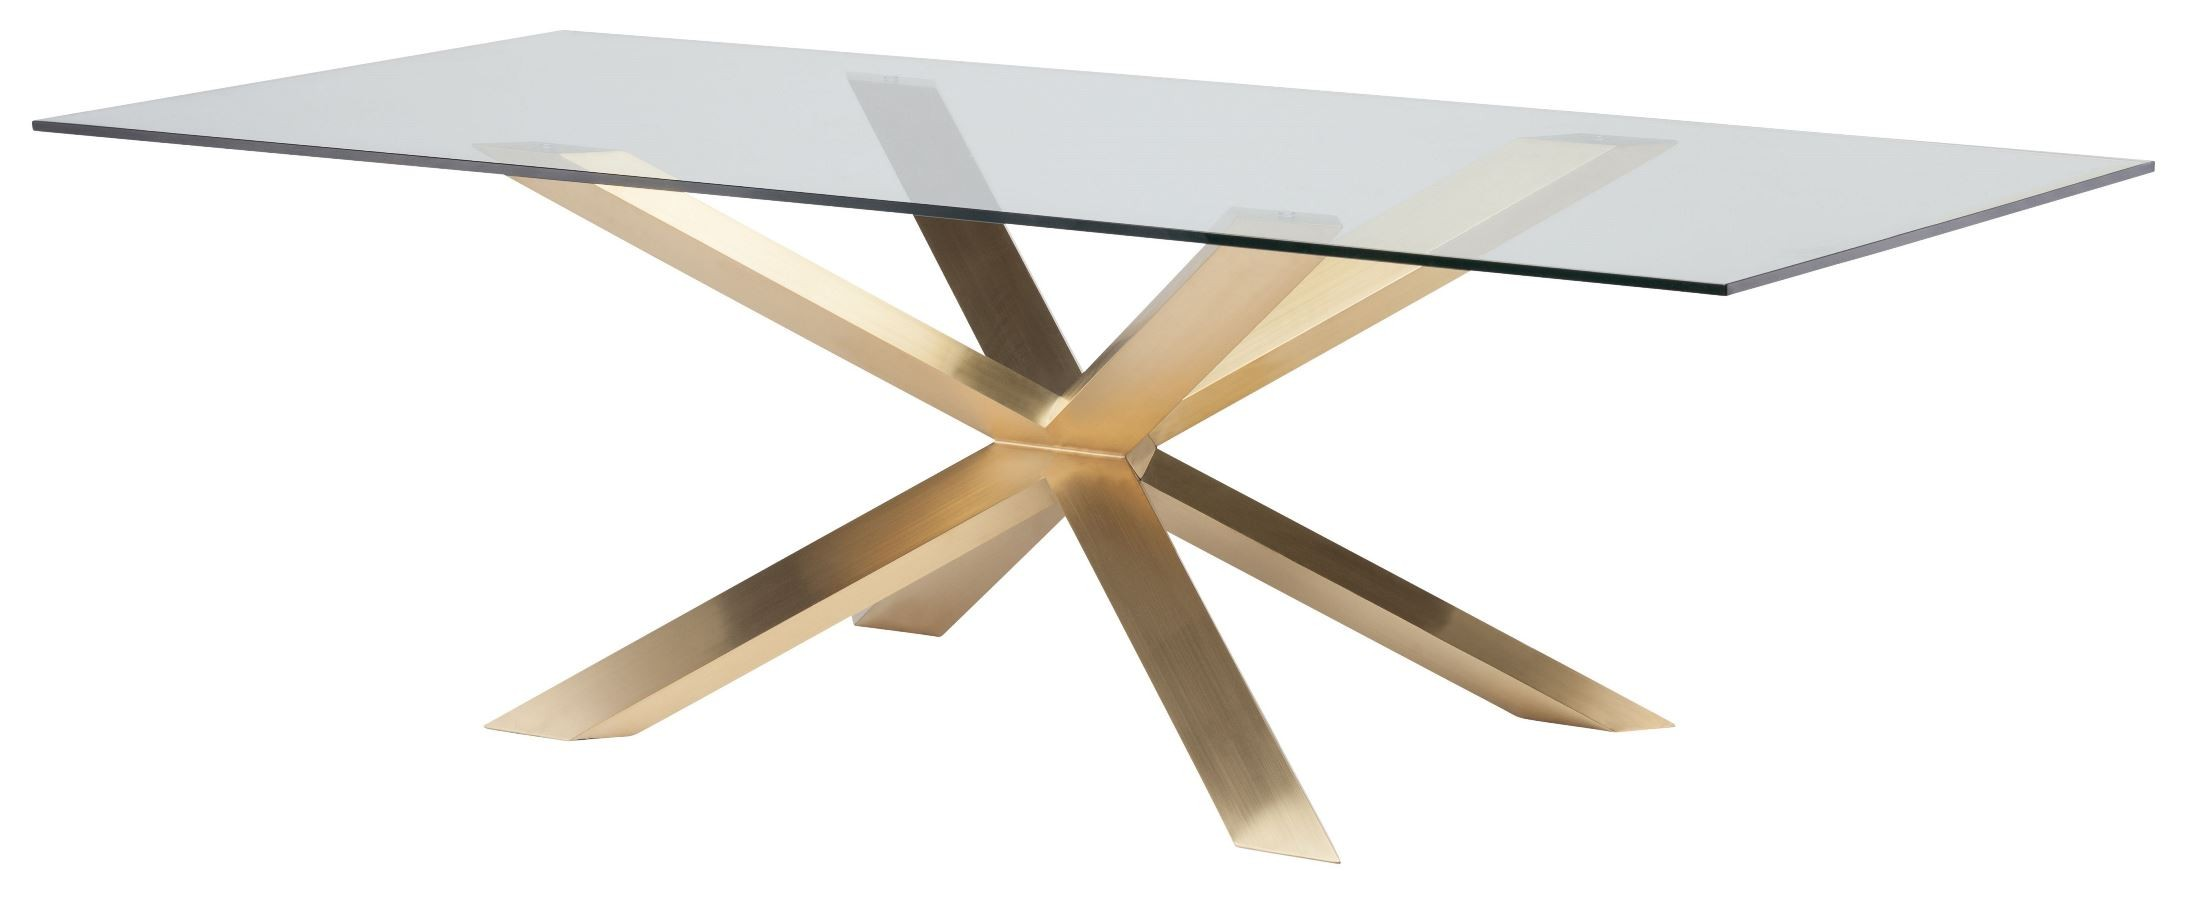 Couture 94quot Brushed Gold Clear Glass Dining Table from  : hgsx149hr from colemanfurniture.com size 2200 x 899 jpeg 93kB